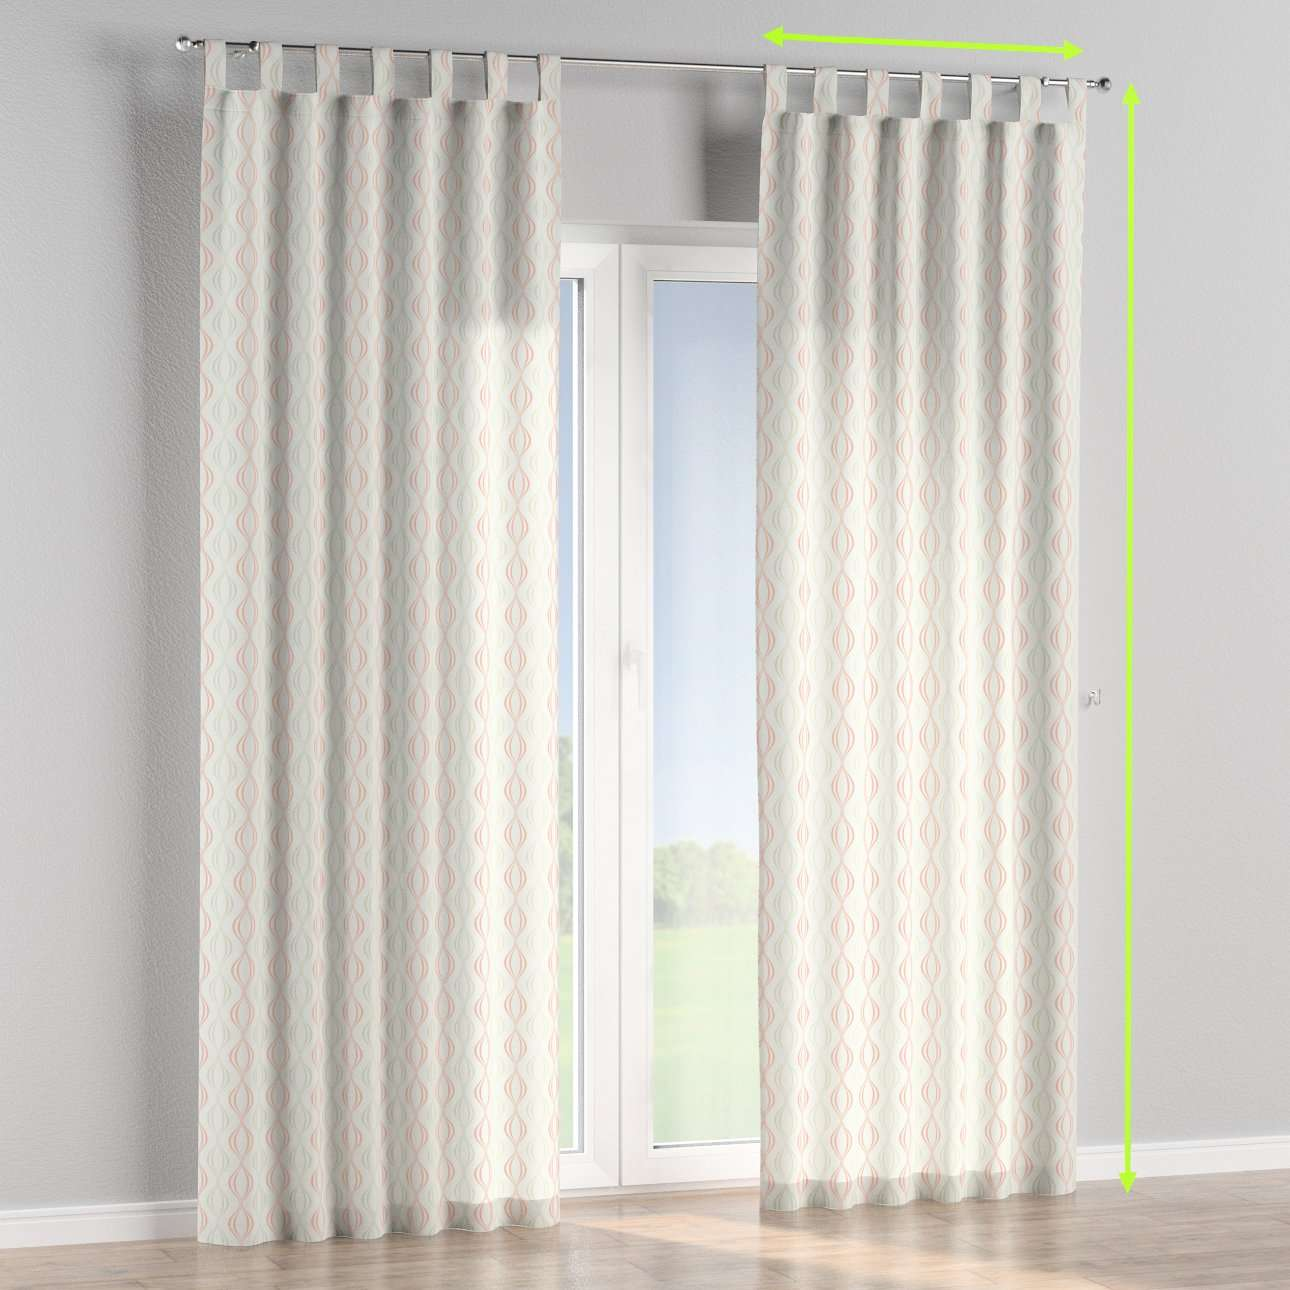 Tab top curtains in collection Geometric, fabric: 141-49